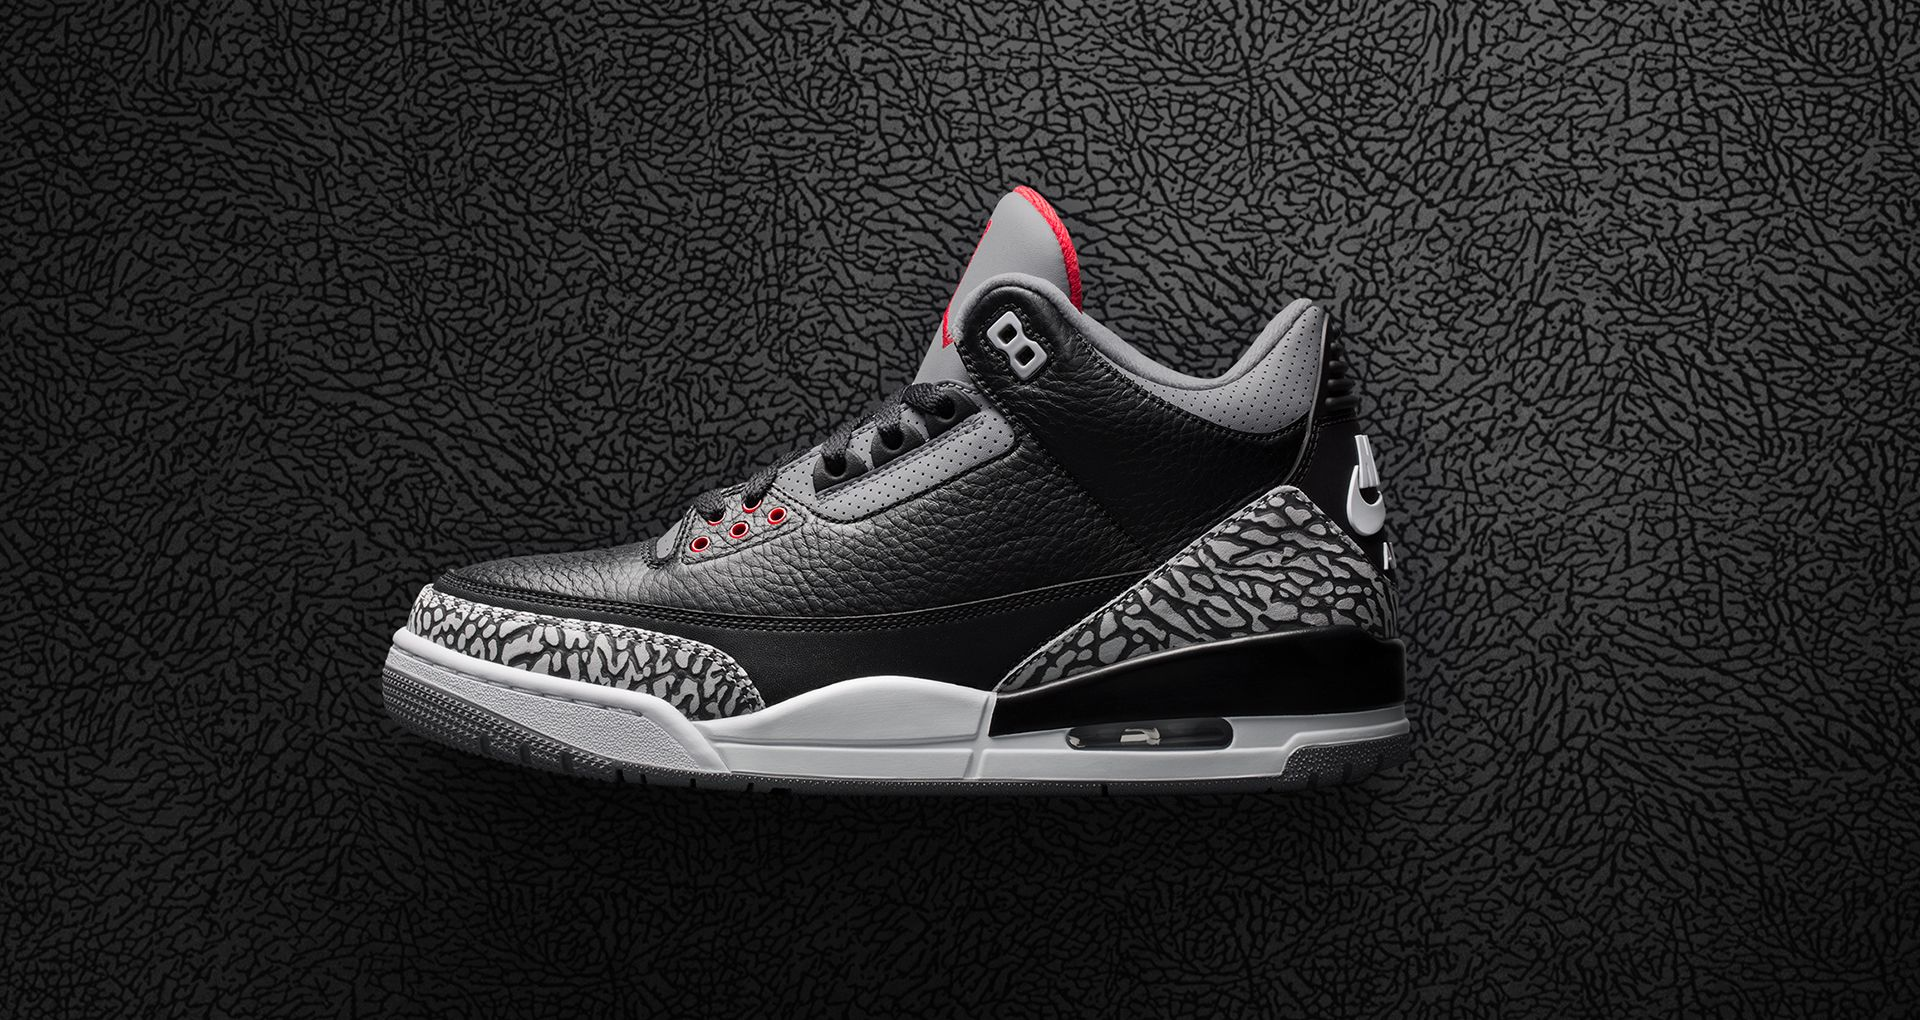 official photos e7e06 f820f AIR JORDAN III. BLACK CEMENT